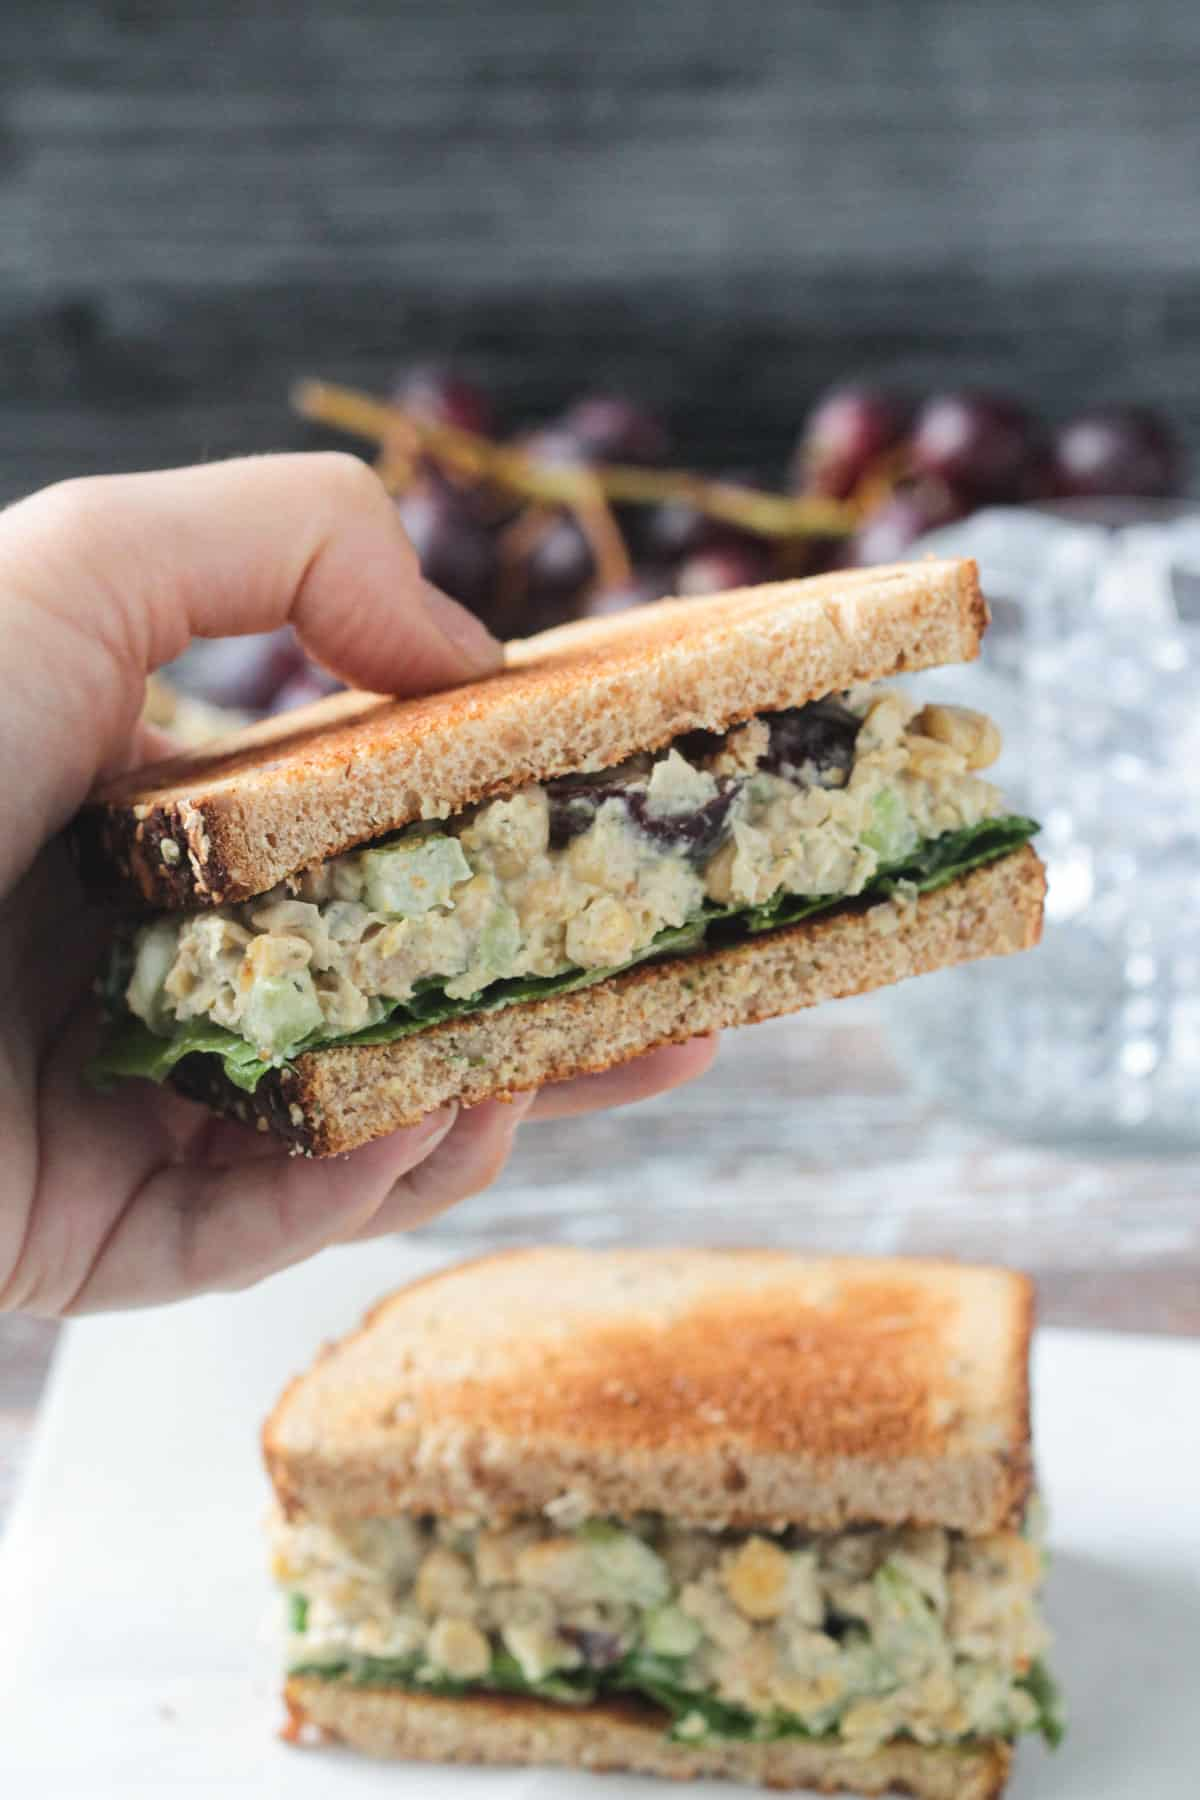 Hand holding up a half of a vegan chickpea salad sandwich.